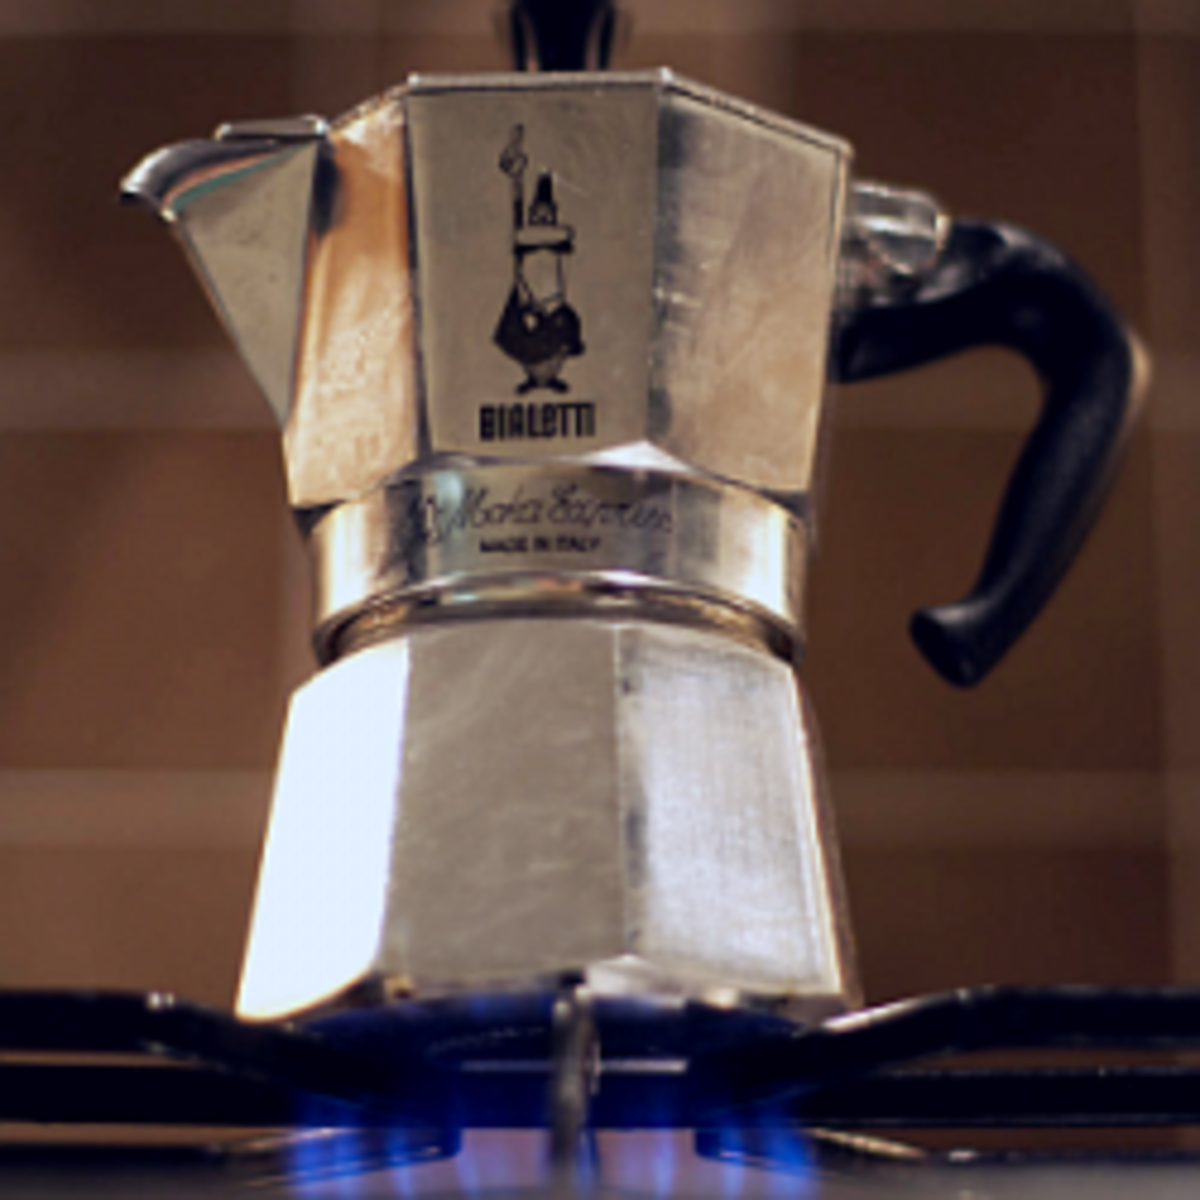 Moka Pot vs Aeropress vs French Press - Espresso Alternative Brews